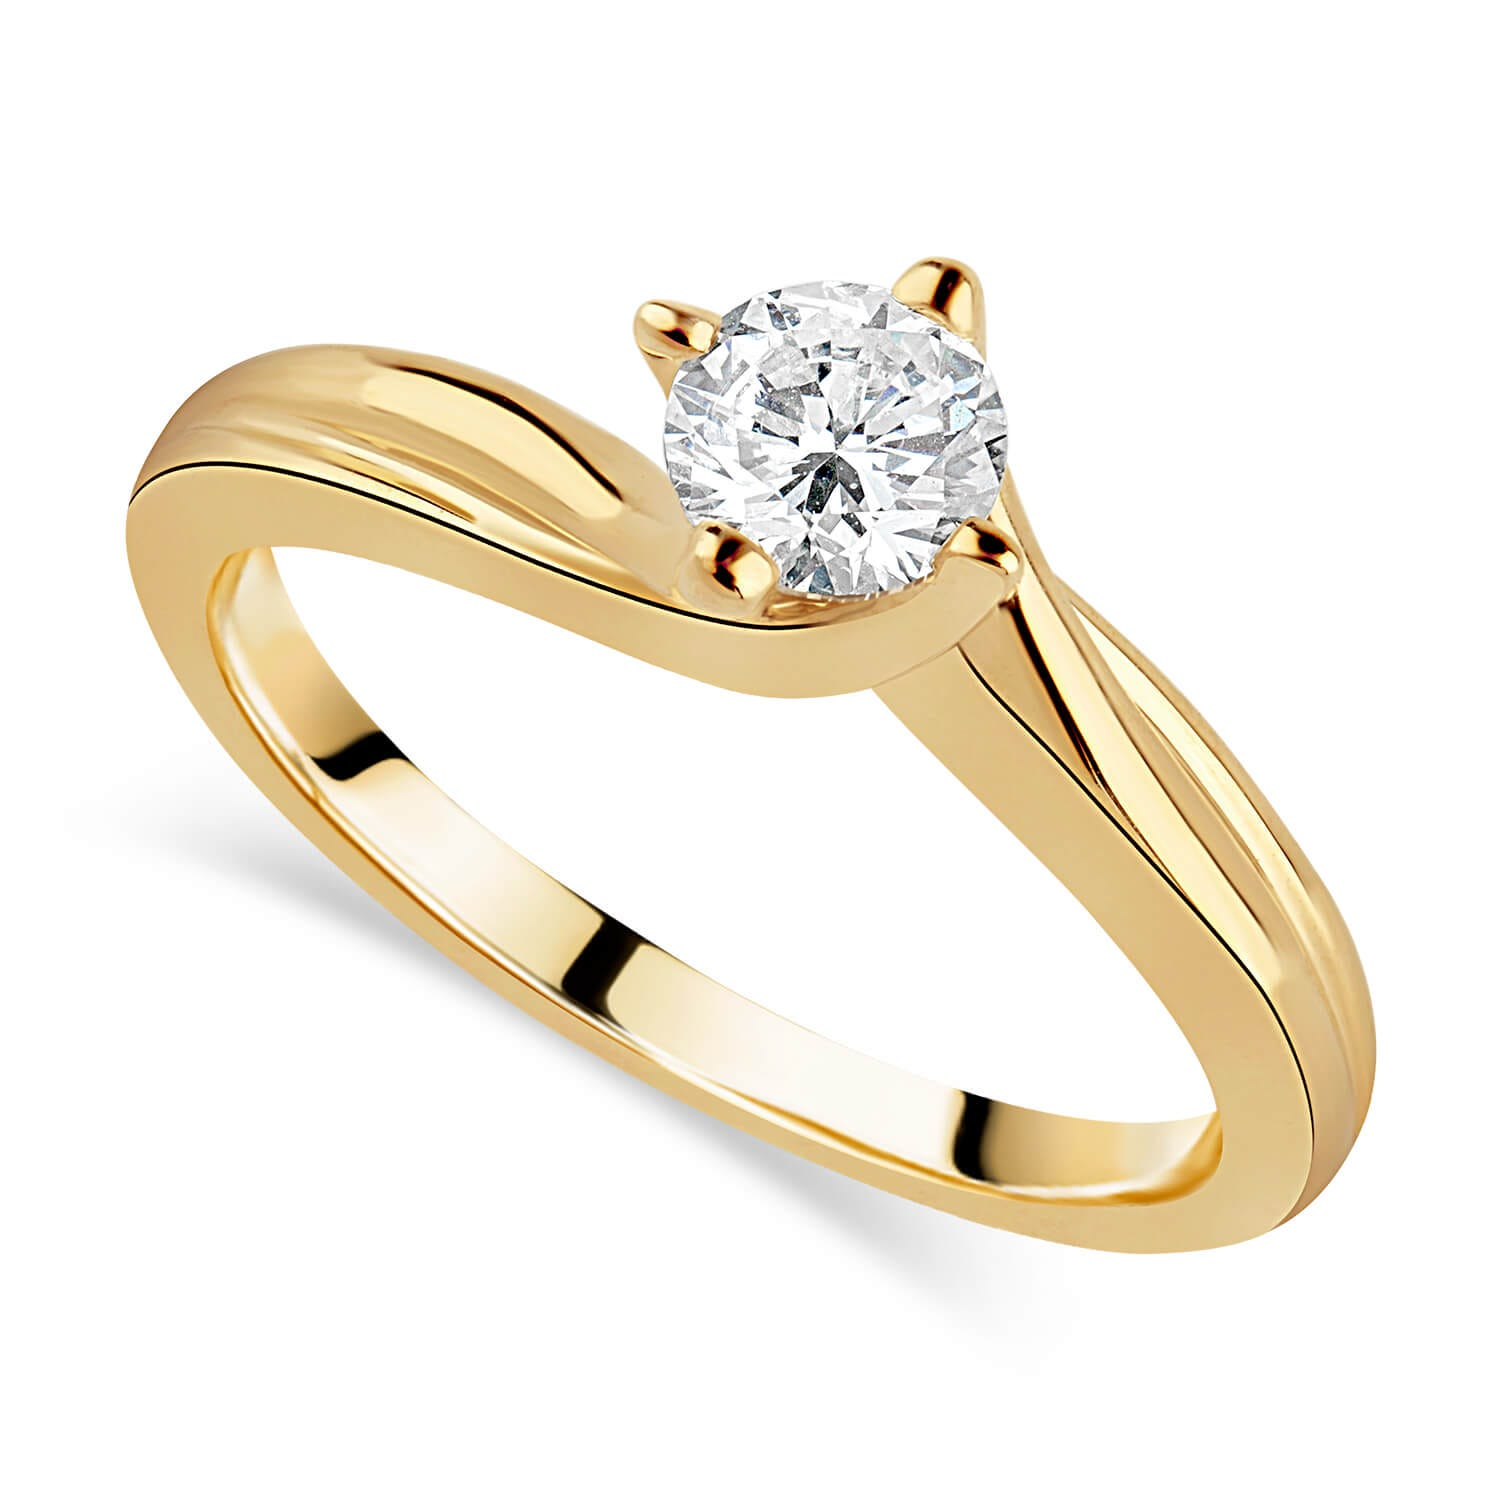 18ct Yellow Gold 0.33ct Diamond Four Claw Twist Ring